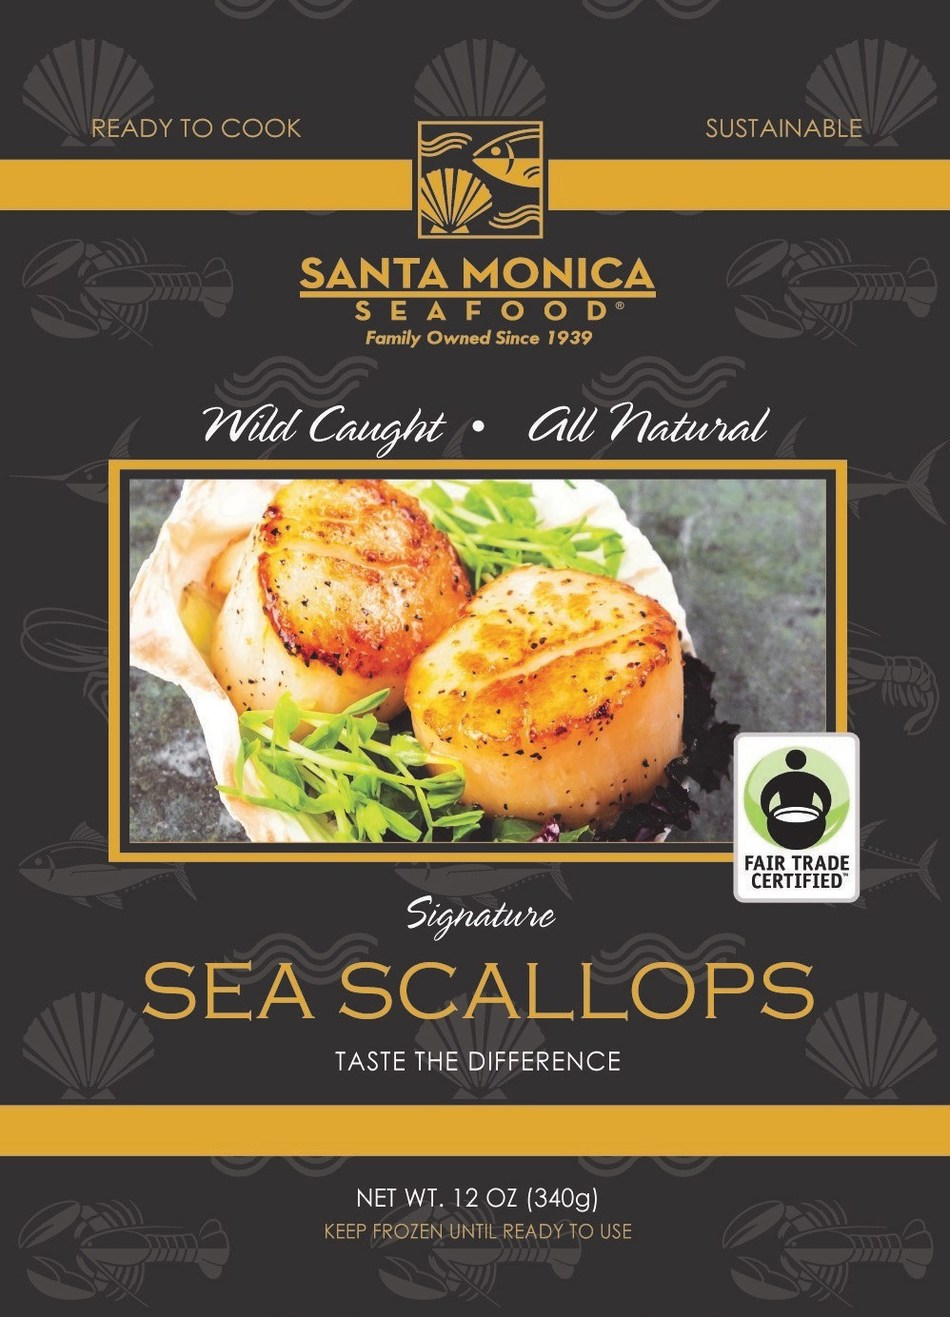 Fair Trade scallops are available at Southern California Albertsons, Vons and Pavilions stores and will available this summer at Northern California Safeway stores.